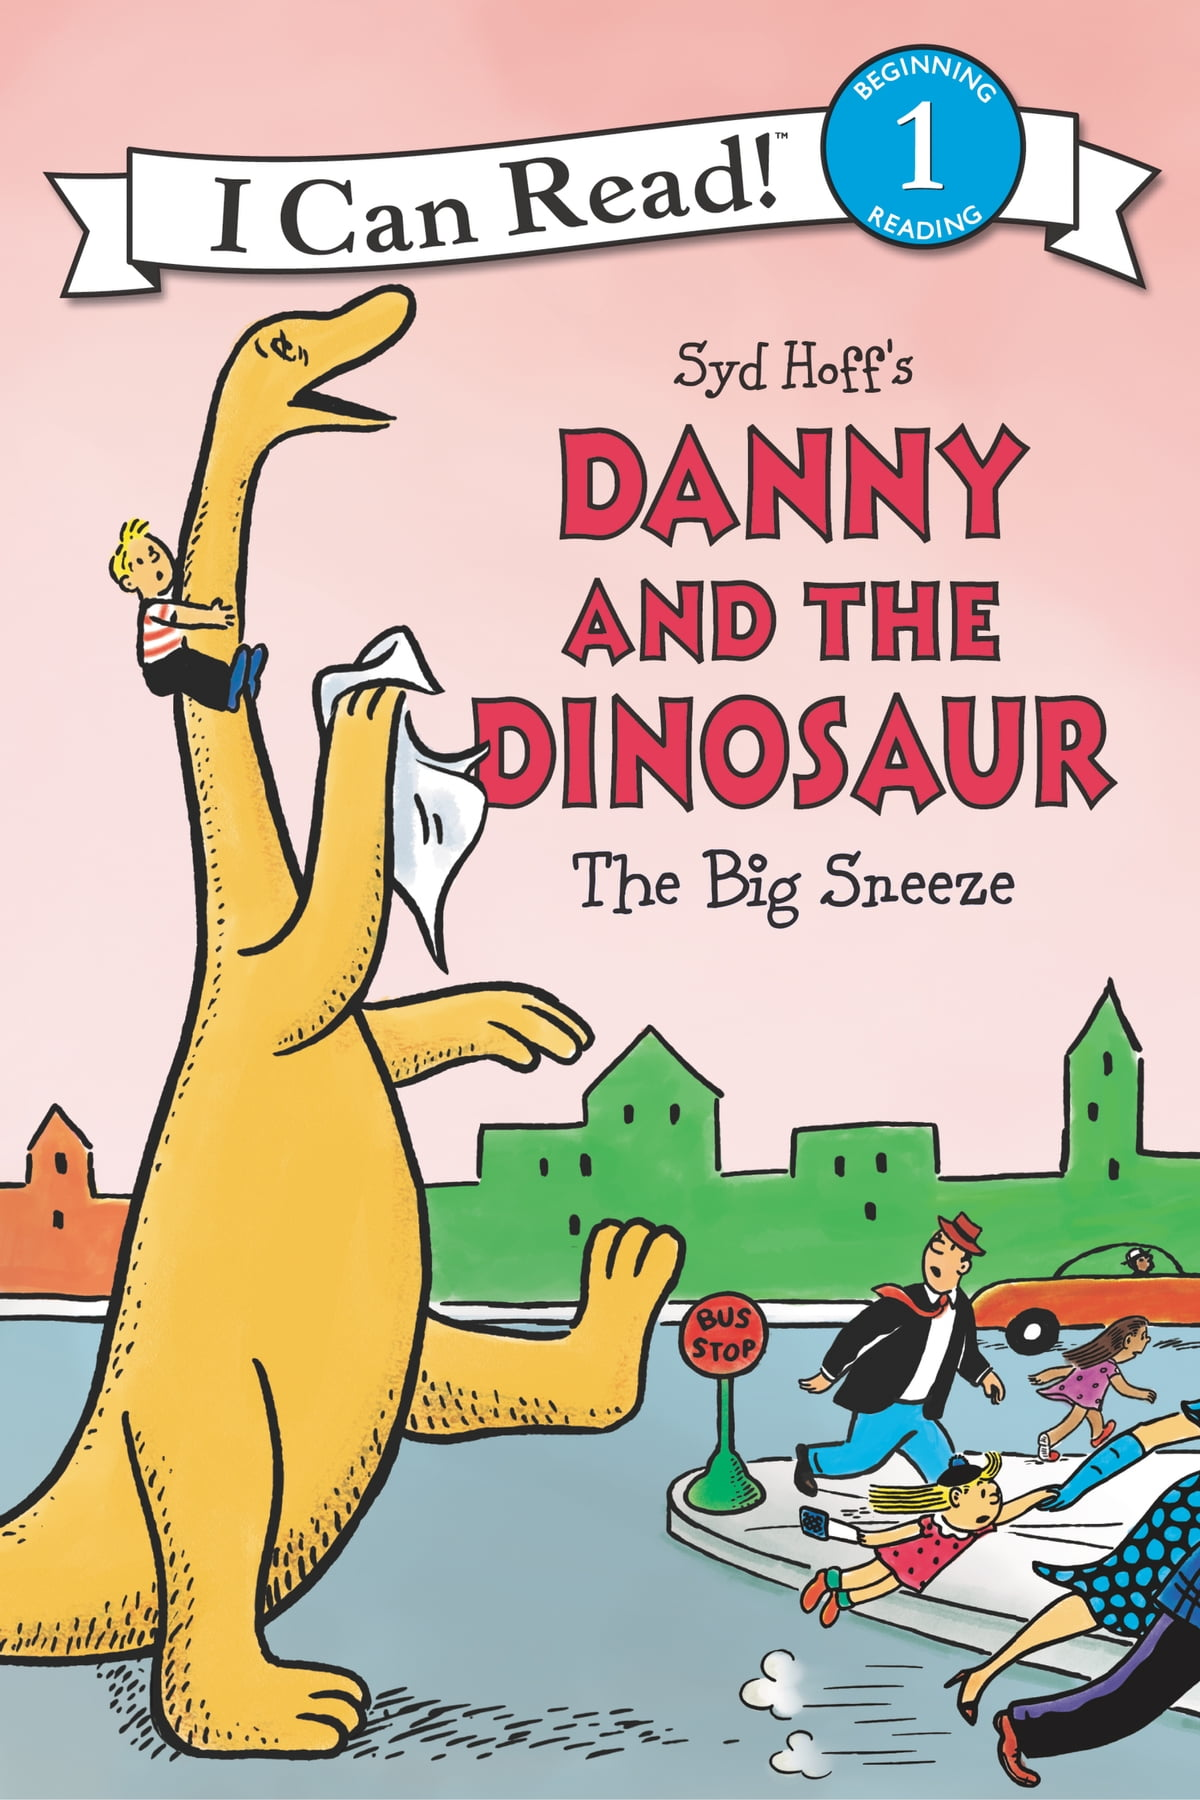 Danny and the Dinosaur